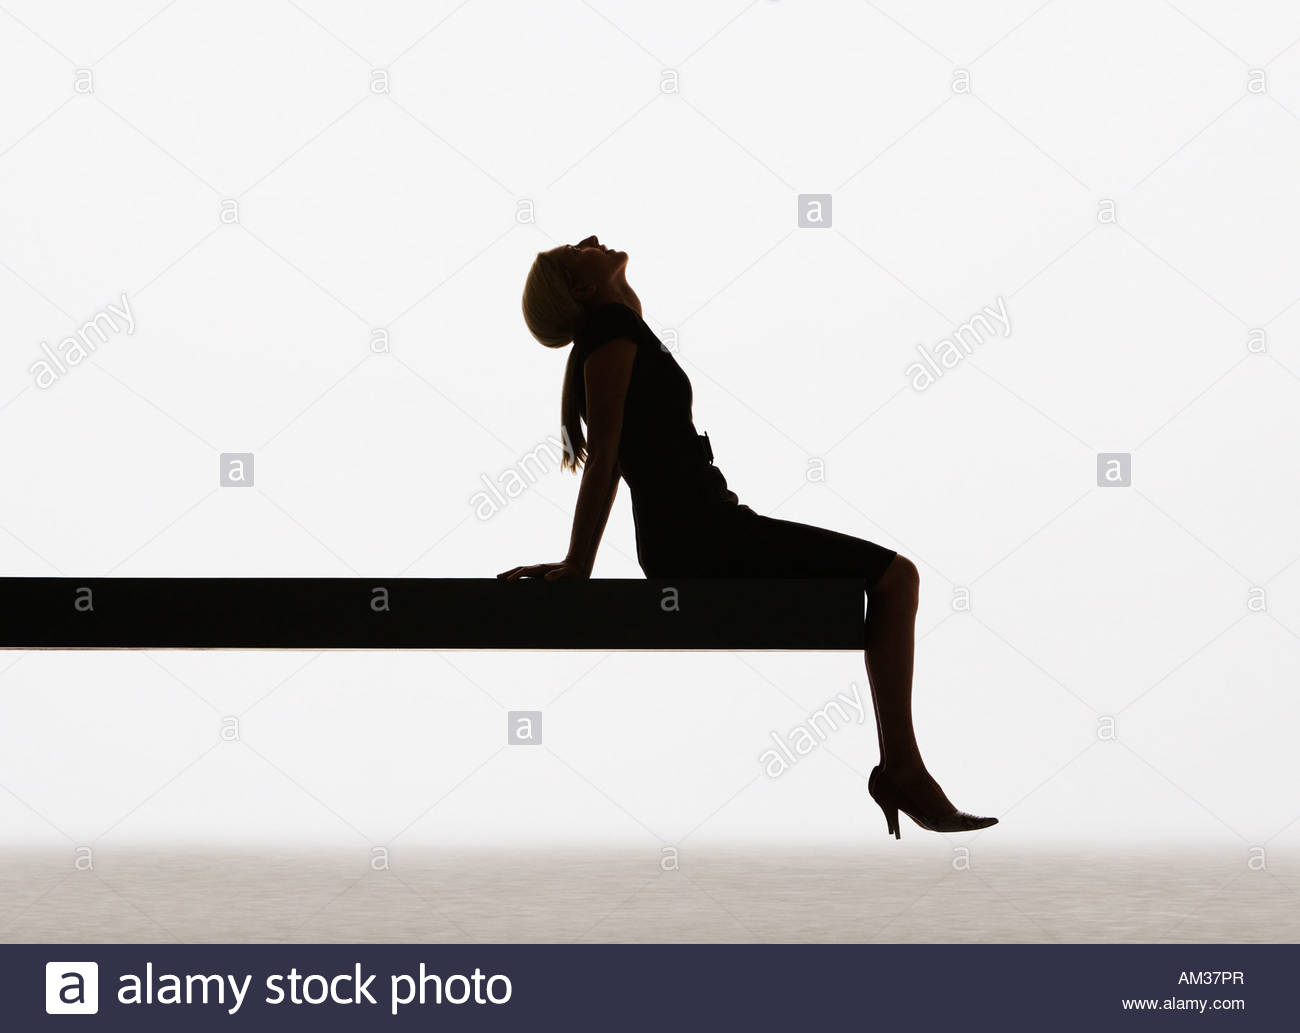 Woman sitting on edge of plank relaxing - Stock Image